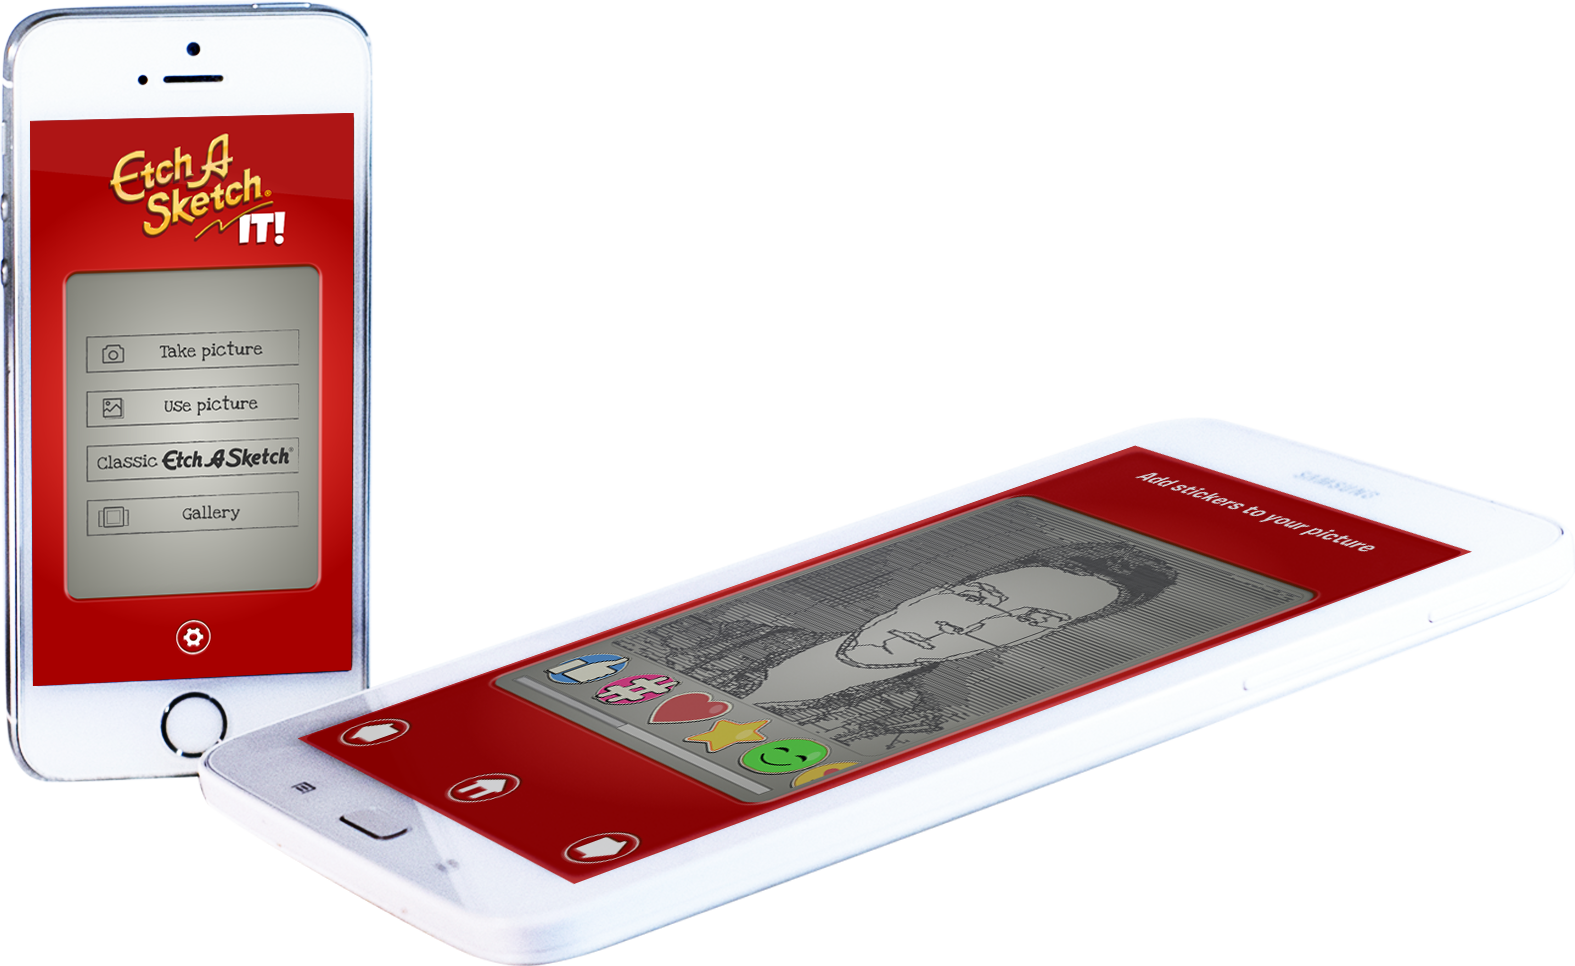 Download Download The Free App Etch A Sketch Full Size Png Image Pngkit